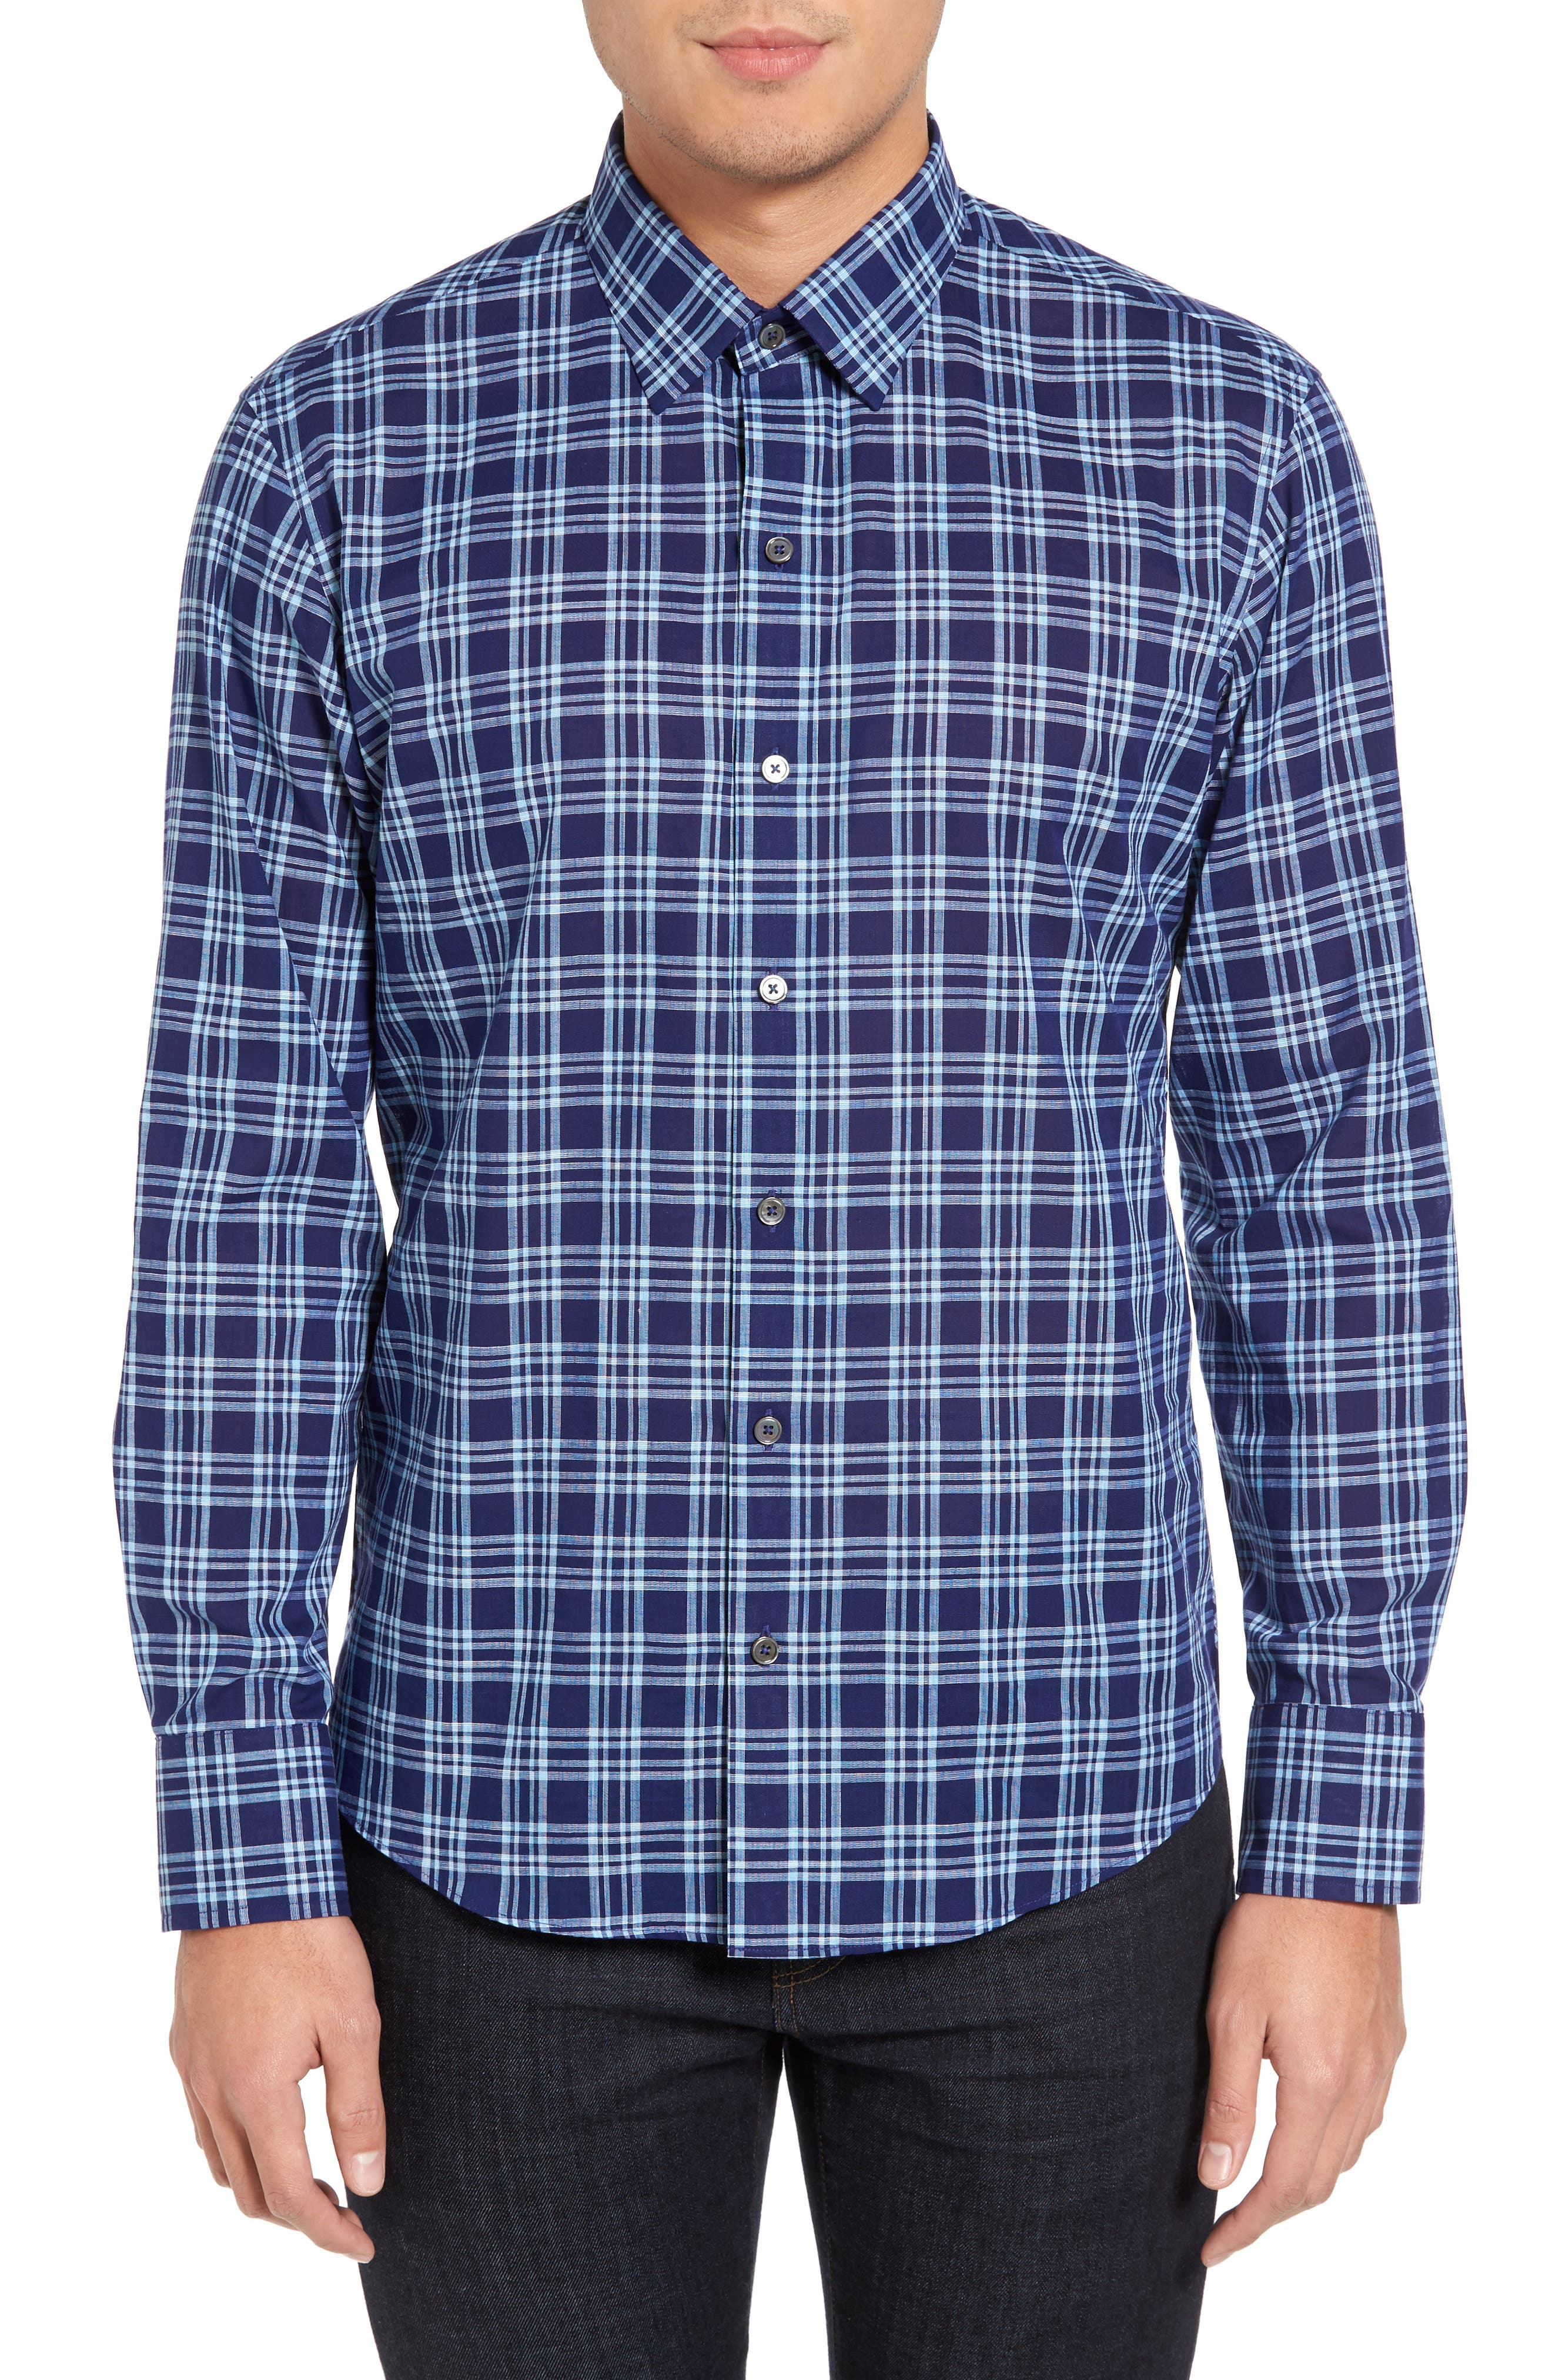 Alternate Image 1 Selected - Zachary Prell Leventhal Trim Fit Plaid Sport Shirt